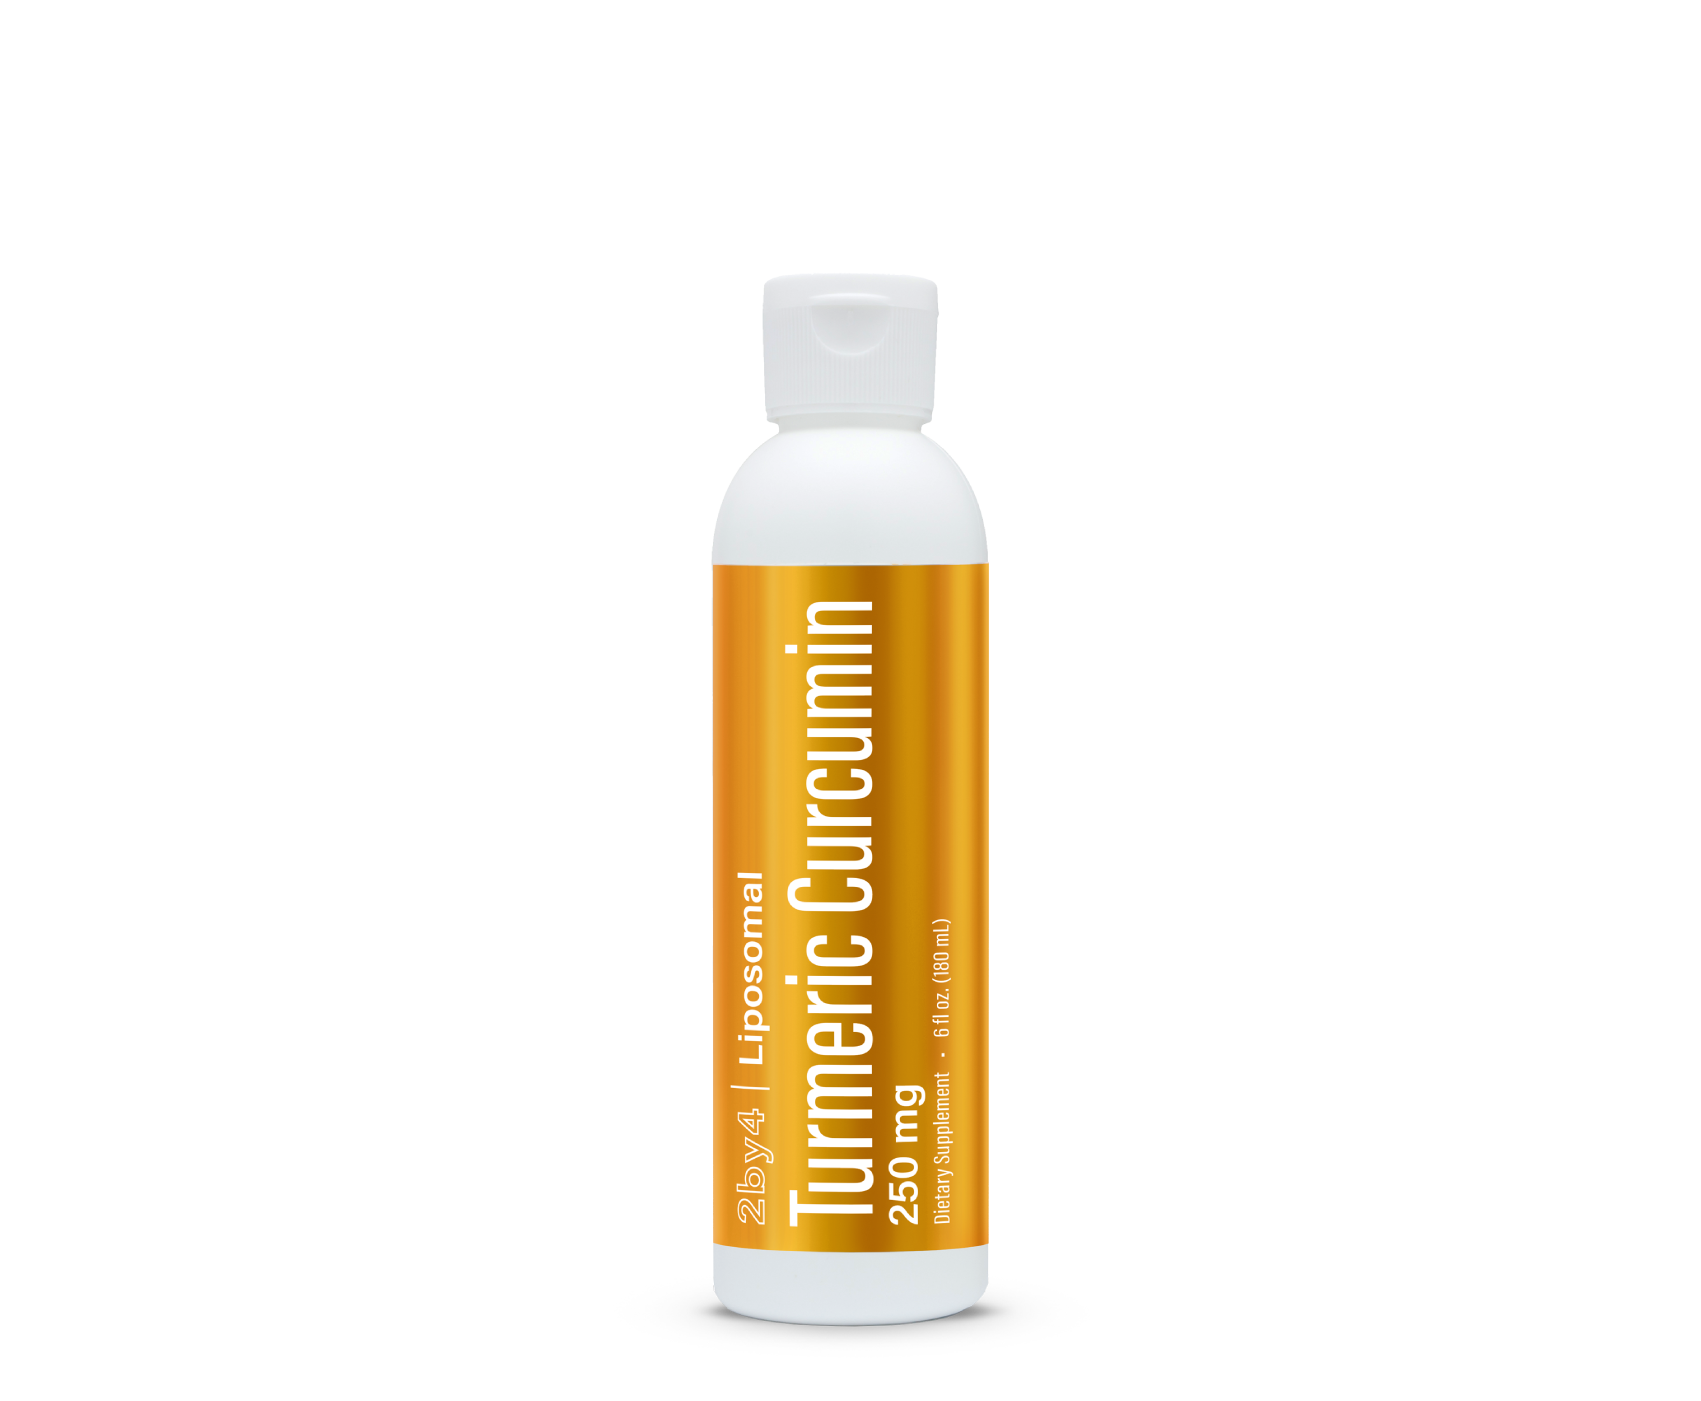 2by4 Liposomal Turmeric Curcumin - with Nutristack Technology